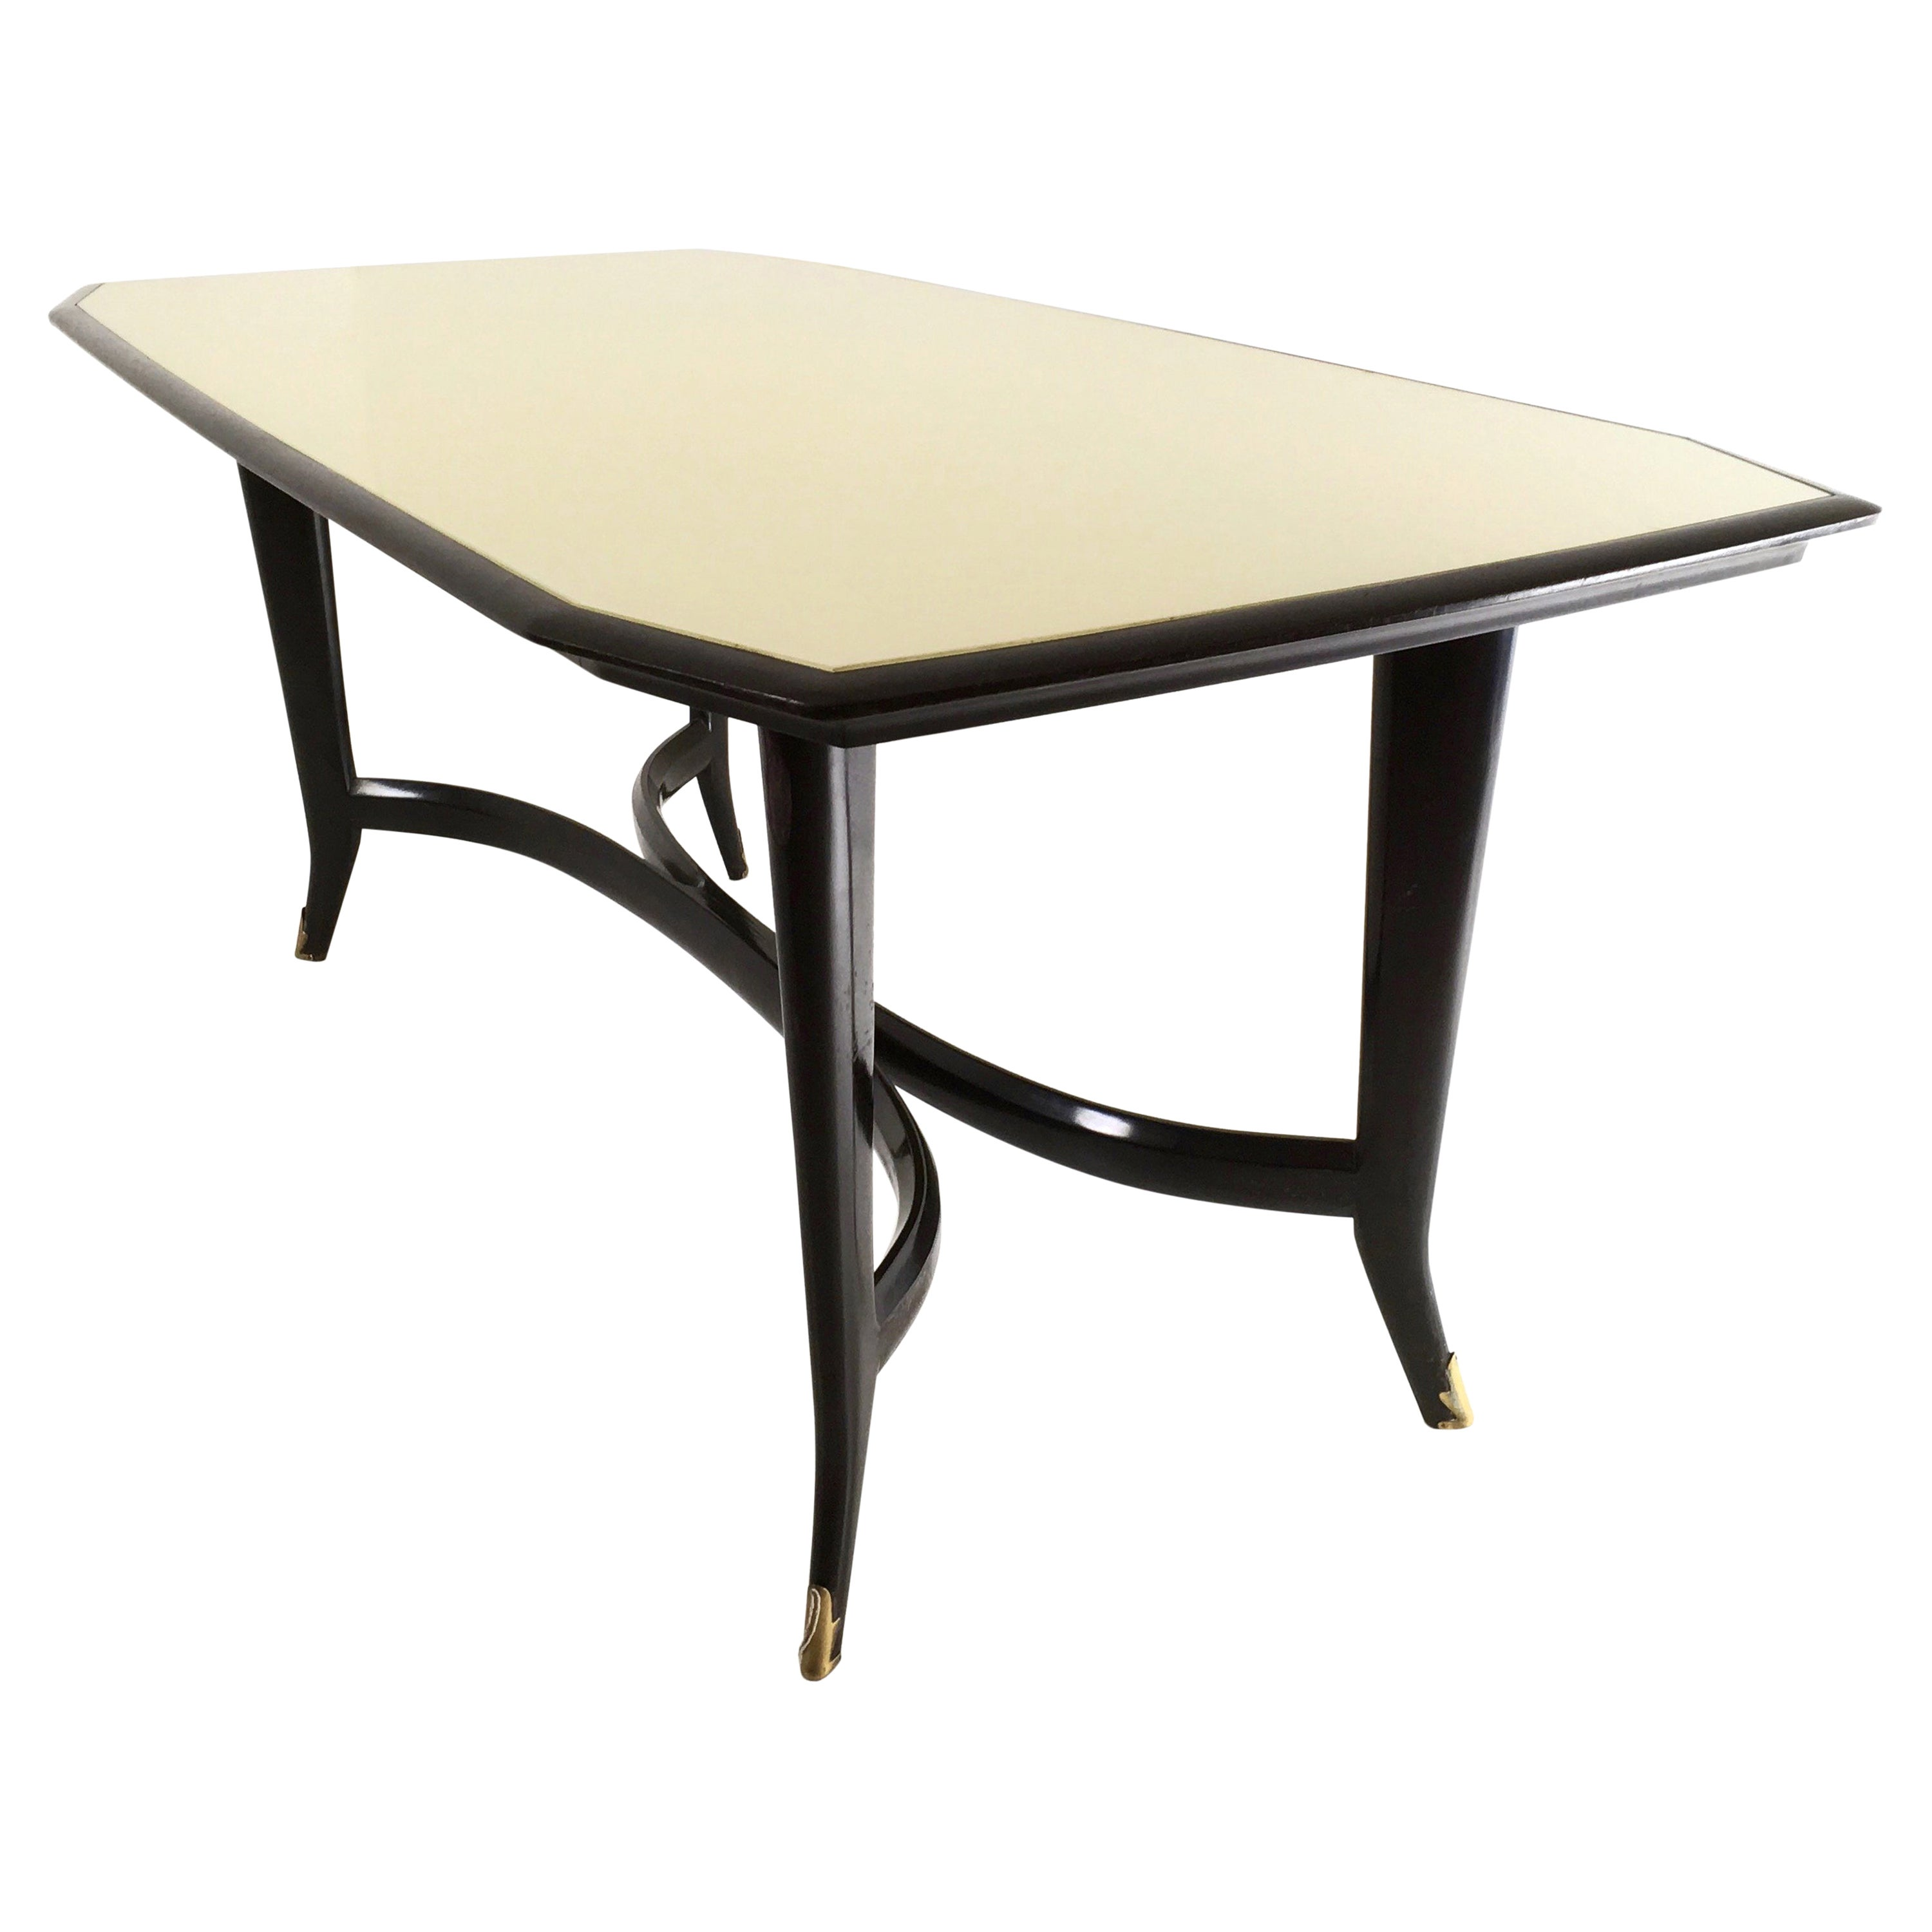 Ebonized Beech Dining Table ascribable to Ulrich with a Glass Top, Italy